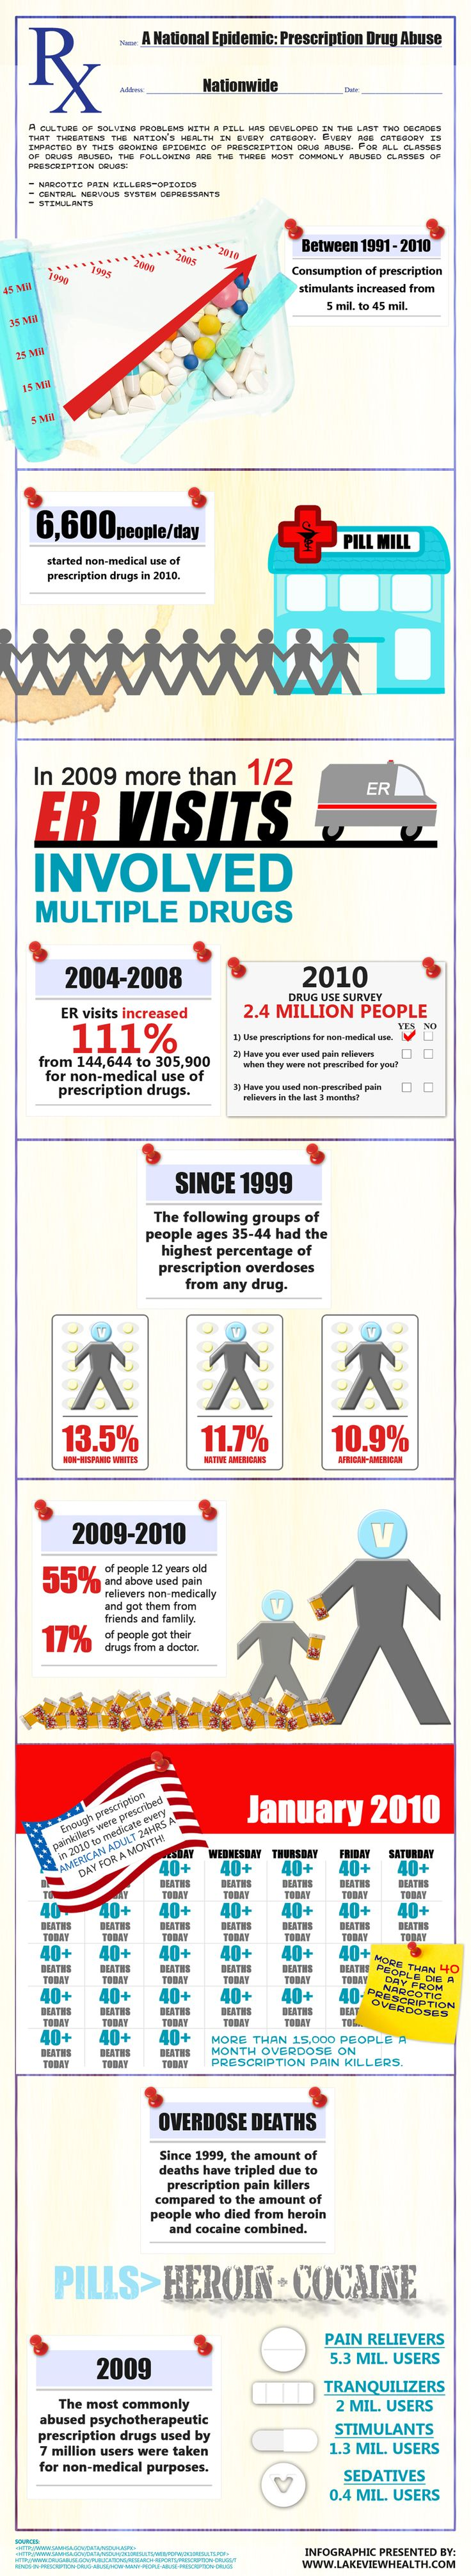 Prescription Drug Abuse Infographics from Lakeview Health Systems http://www.lakeviewhealth.com/prescription-drug-abuse-infographic.php